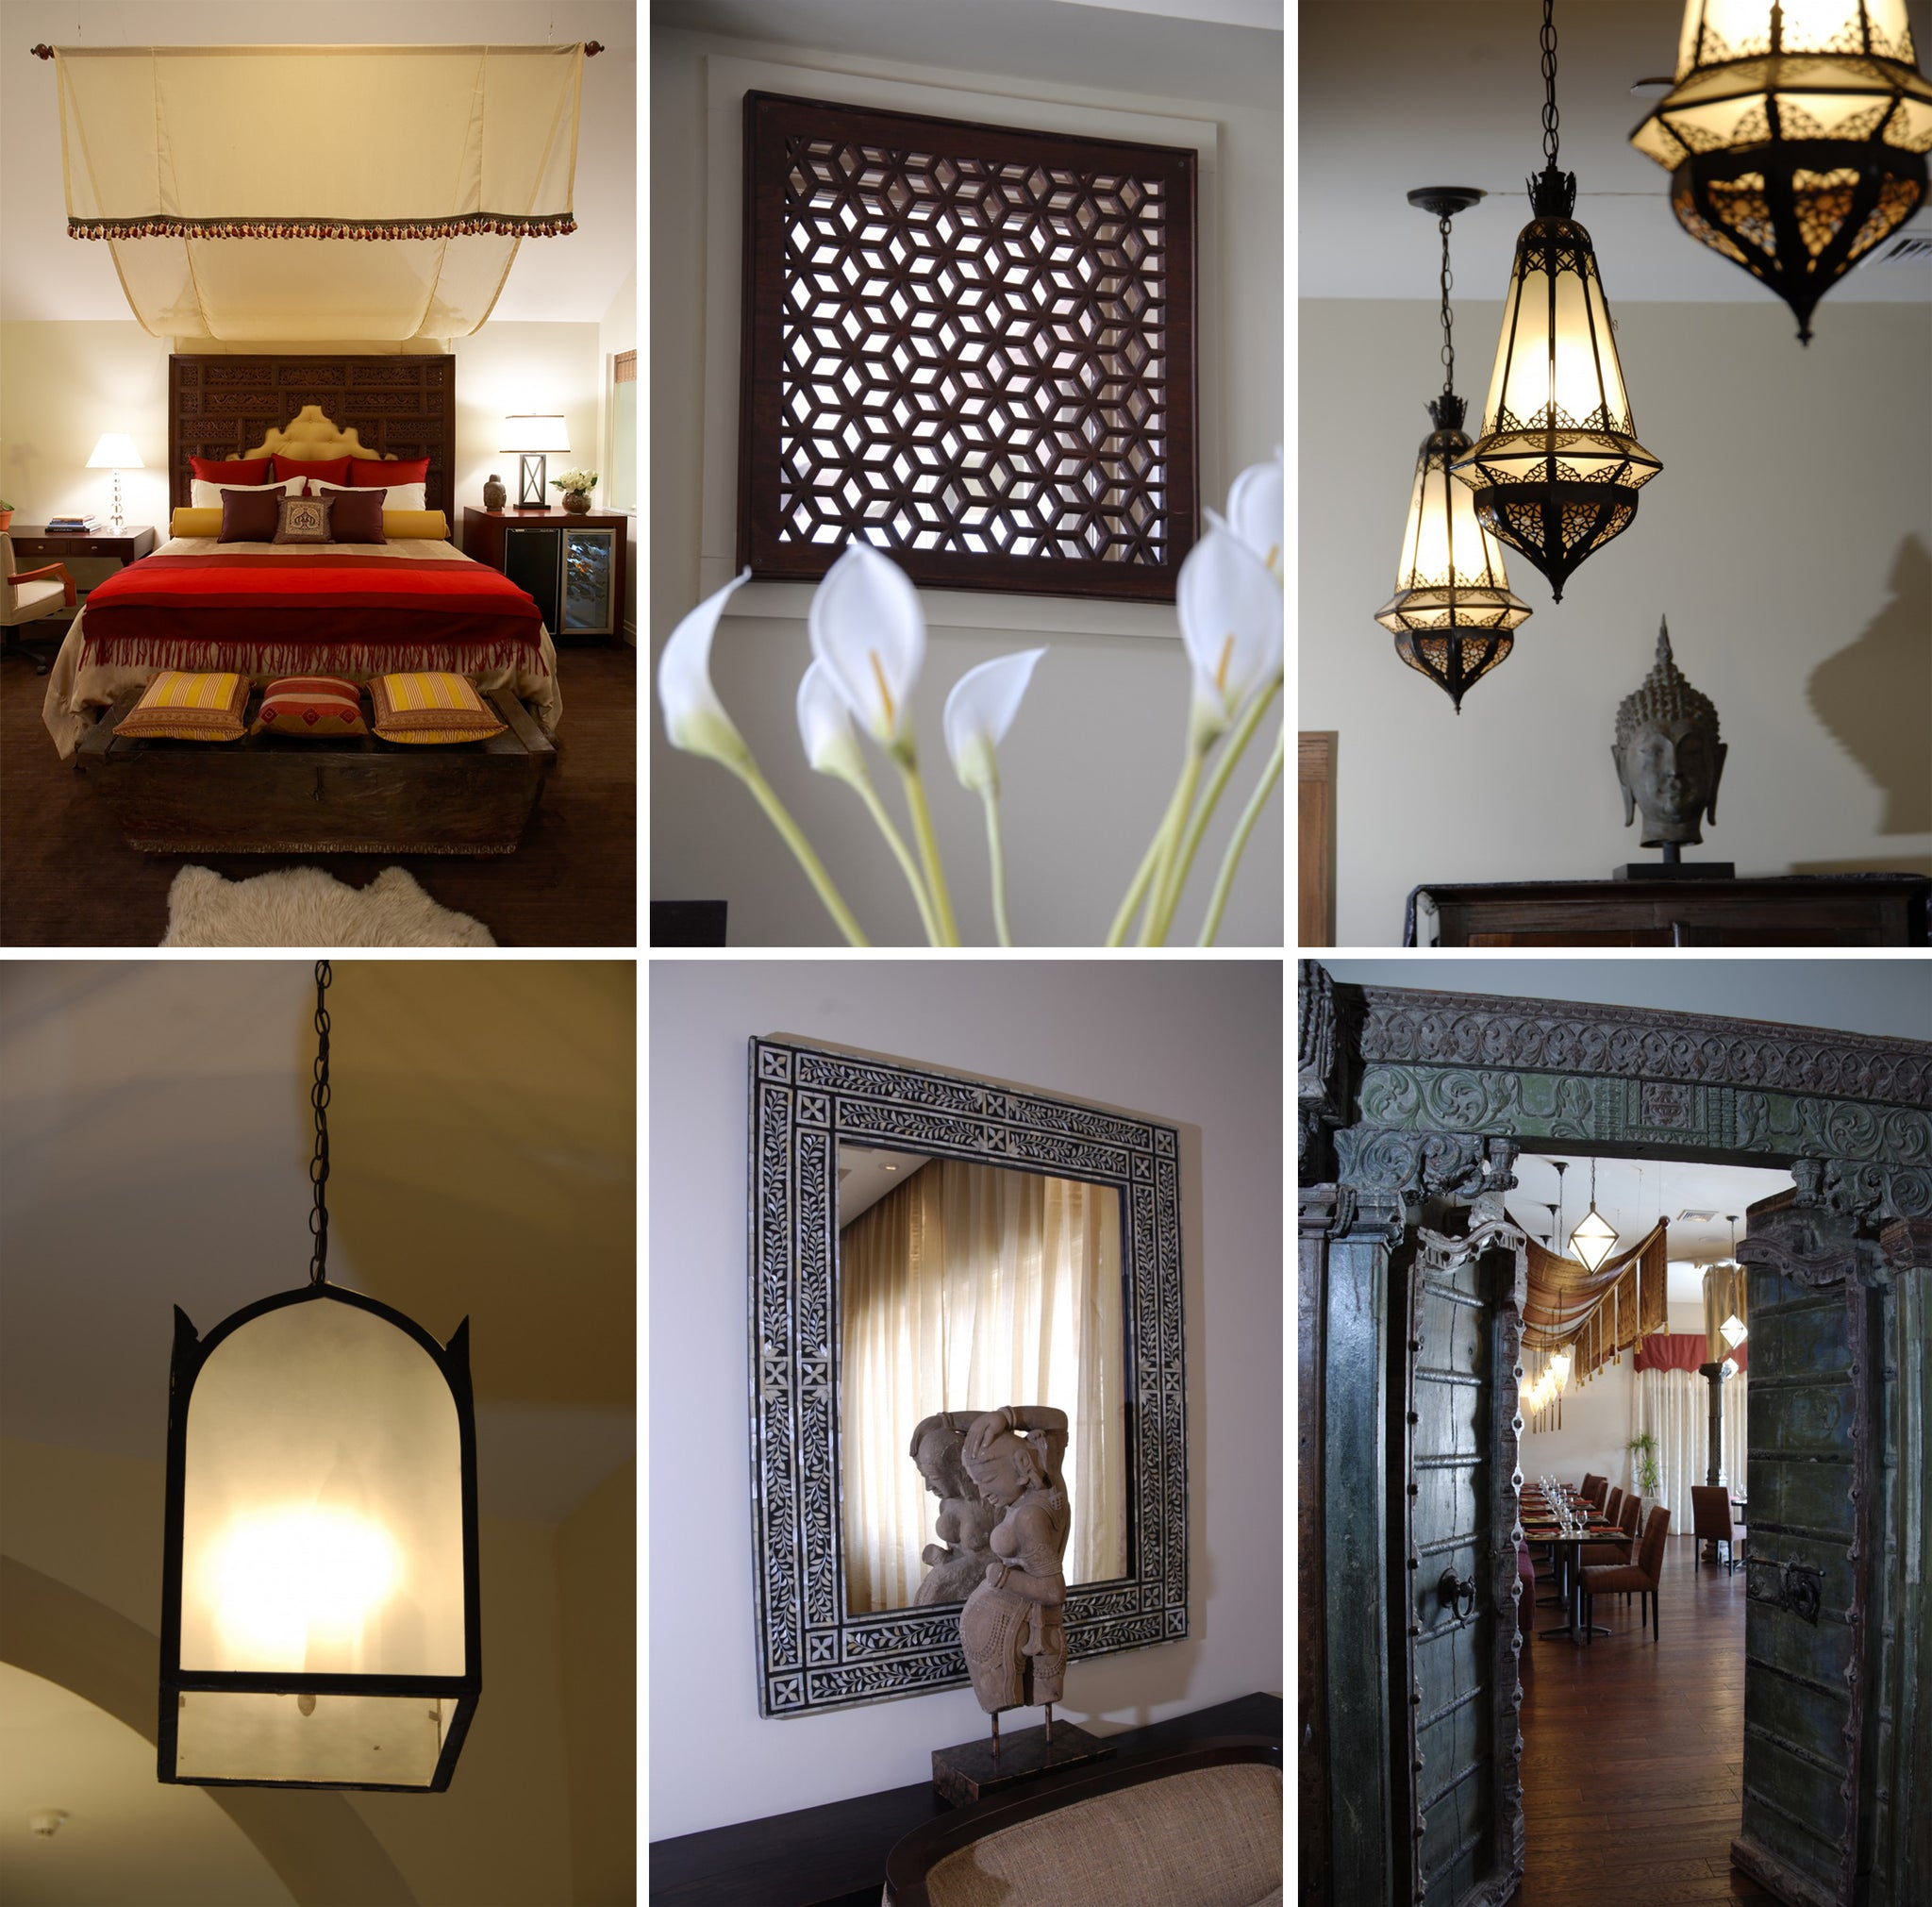 Emerson Resort and Spa Mount Tremper Hudson Valley New York Indian Furniture Headboard Moroccan Lighting